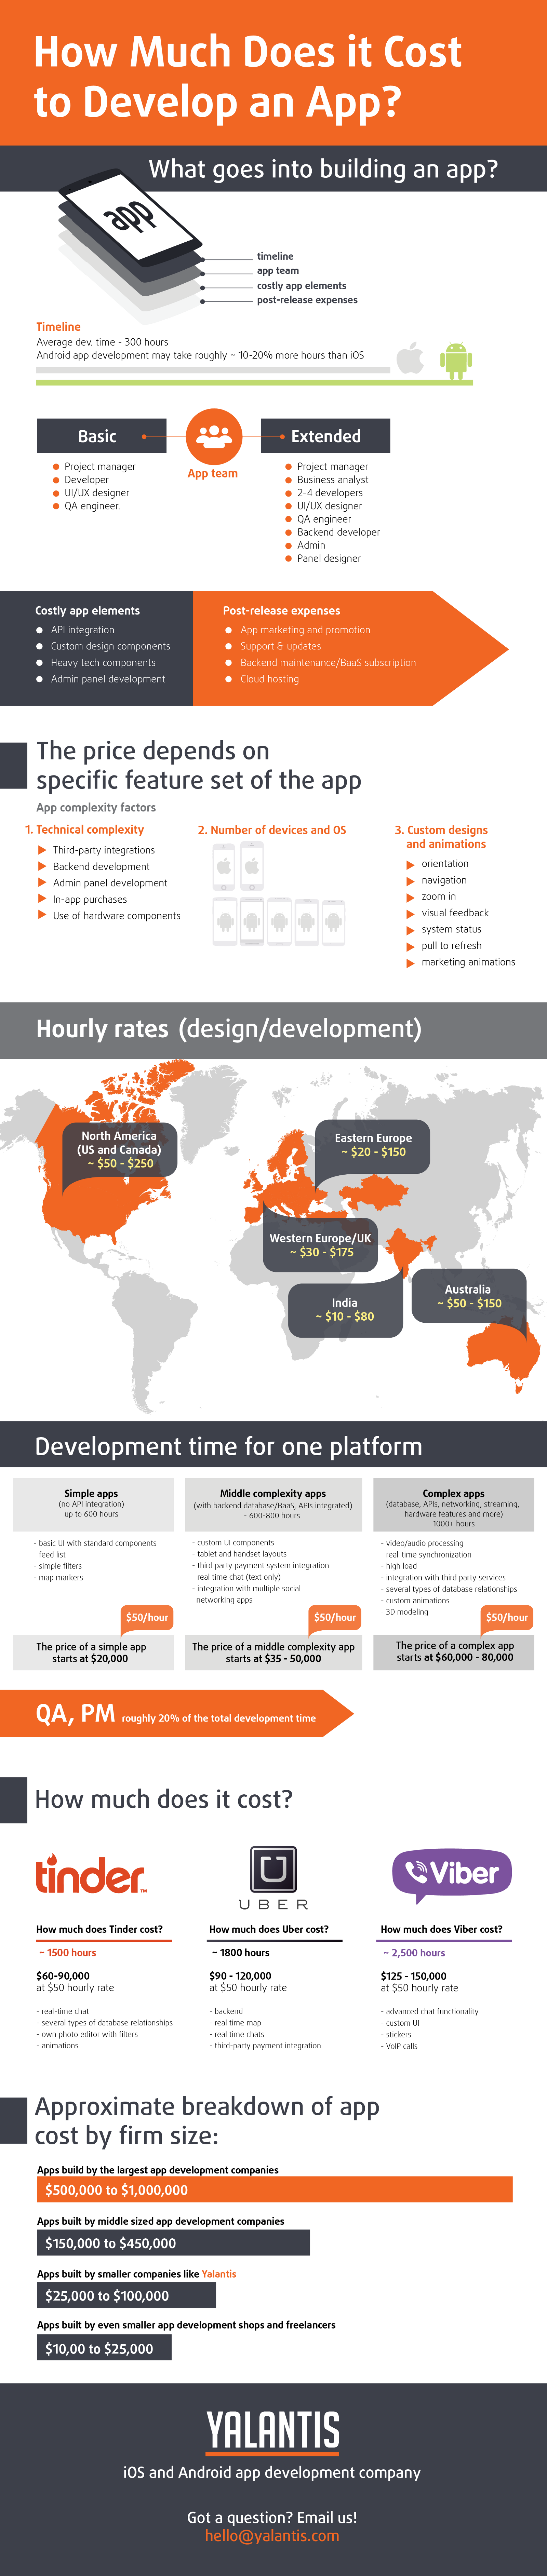 How Much Does It Cost to Make an App? - Yalantis Product ...